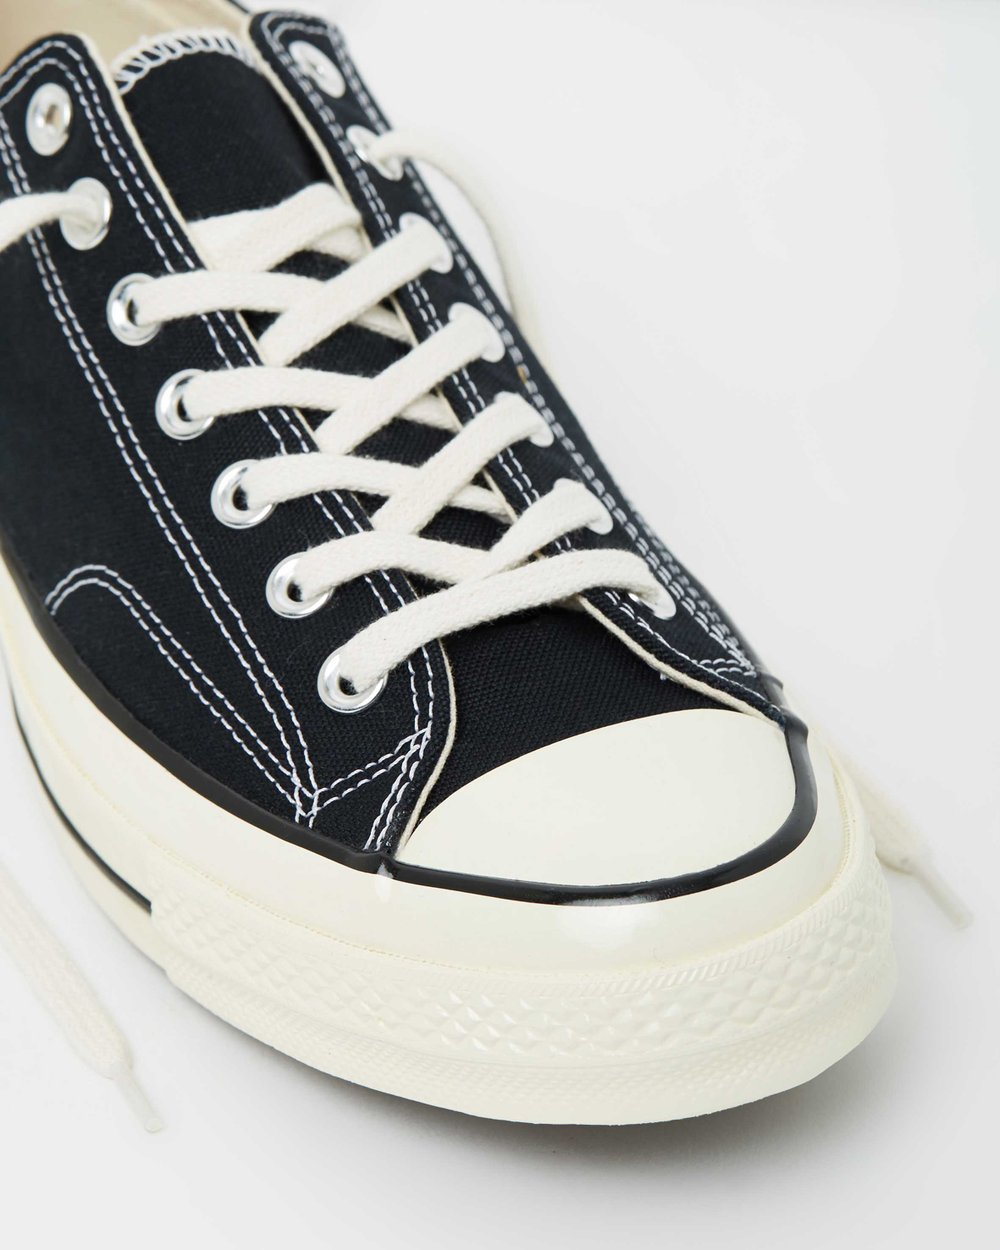 8bab8e42fda85d Chuck Taylor All Star 70 Ox - Unisex by Converse Online